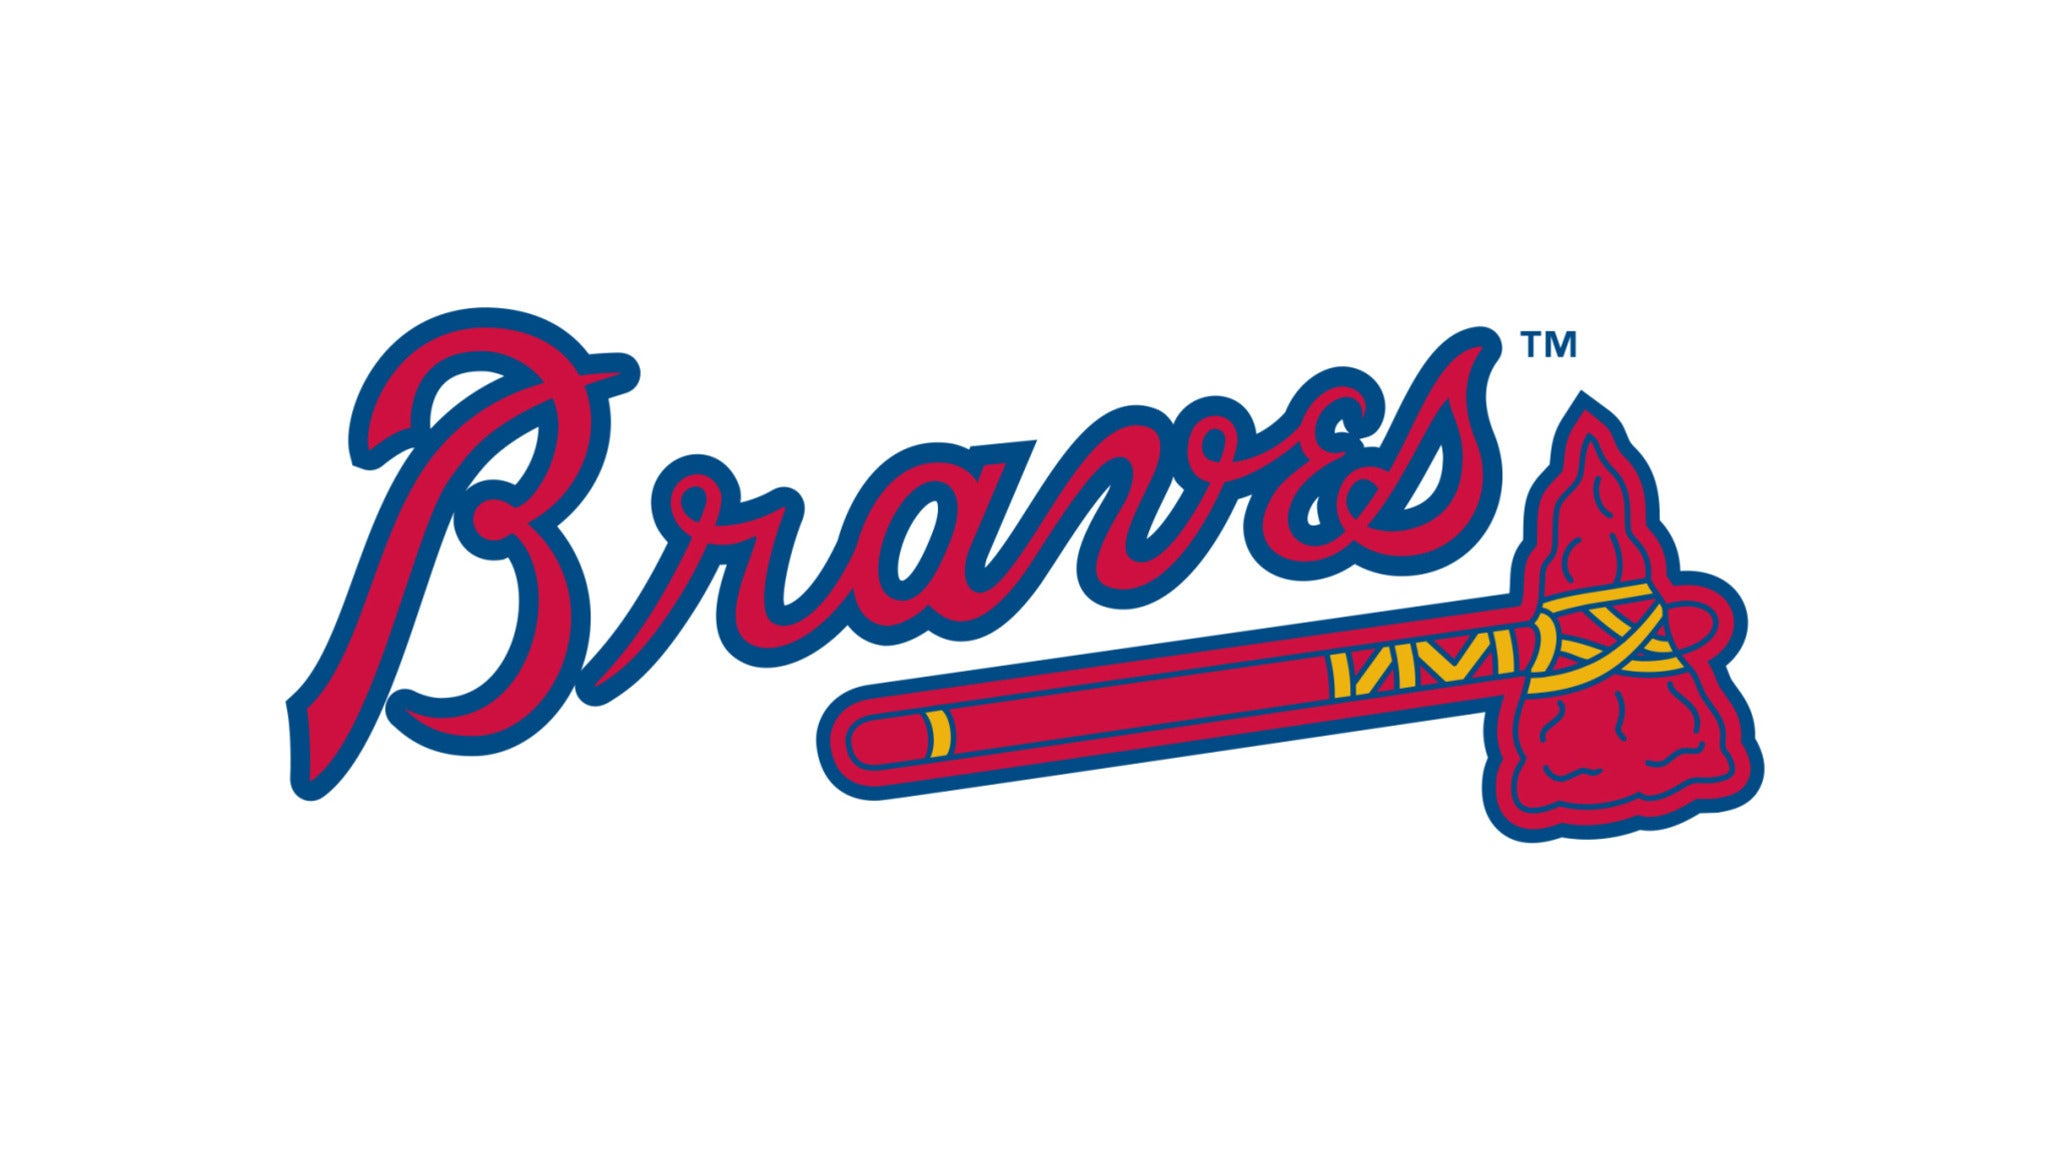 Atlanta Braves vs. Washington Nationals